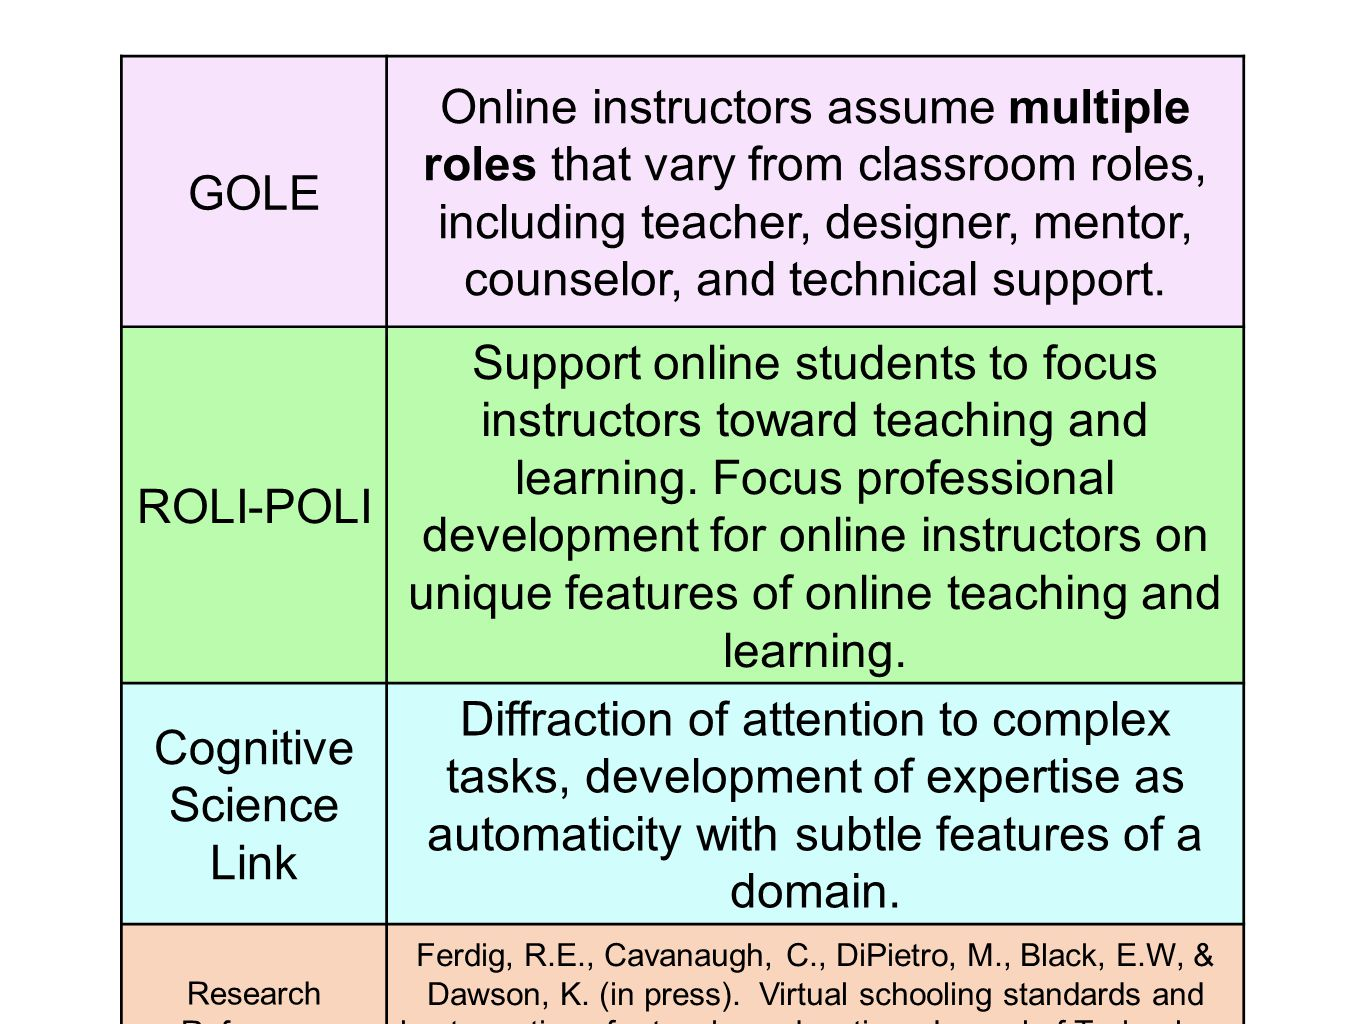 GOLE Online instructors assume multiple roles that vary from classroom roles, including teacher, designer, mentor, counselor, and technical support.